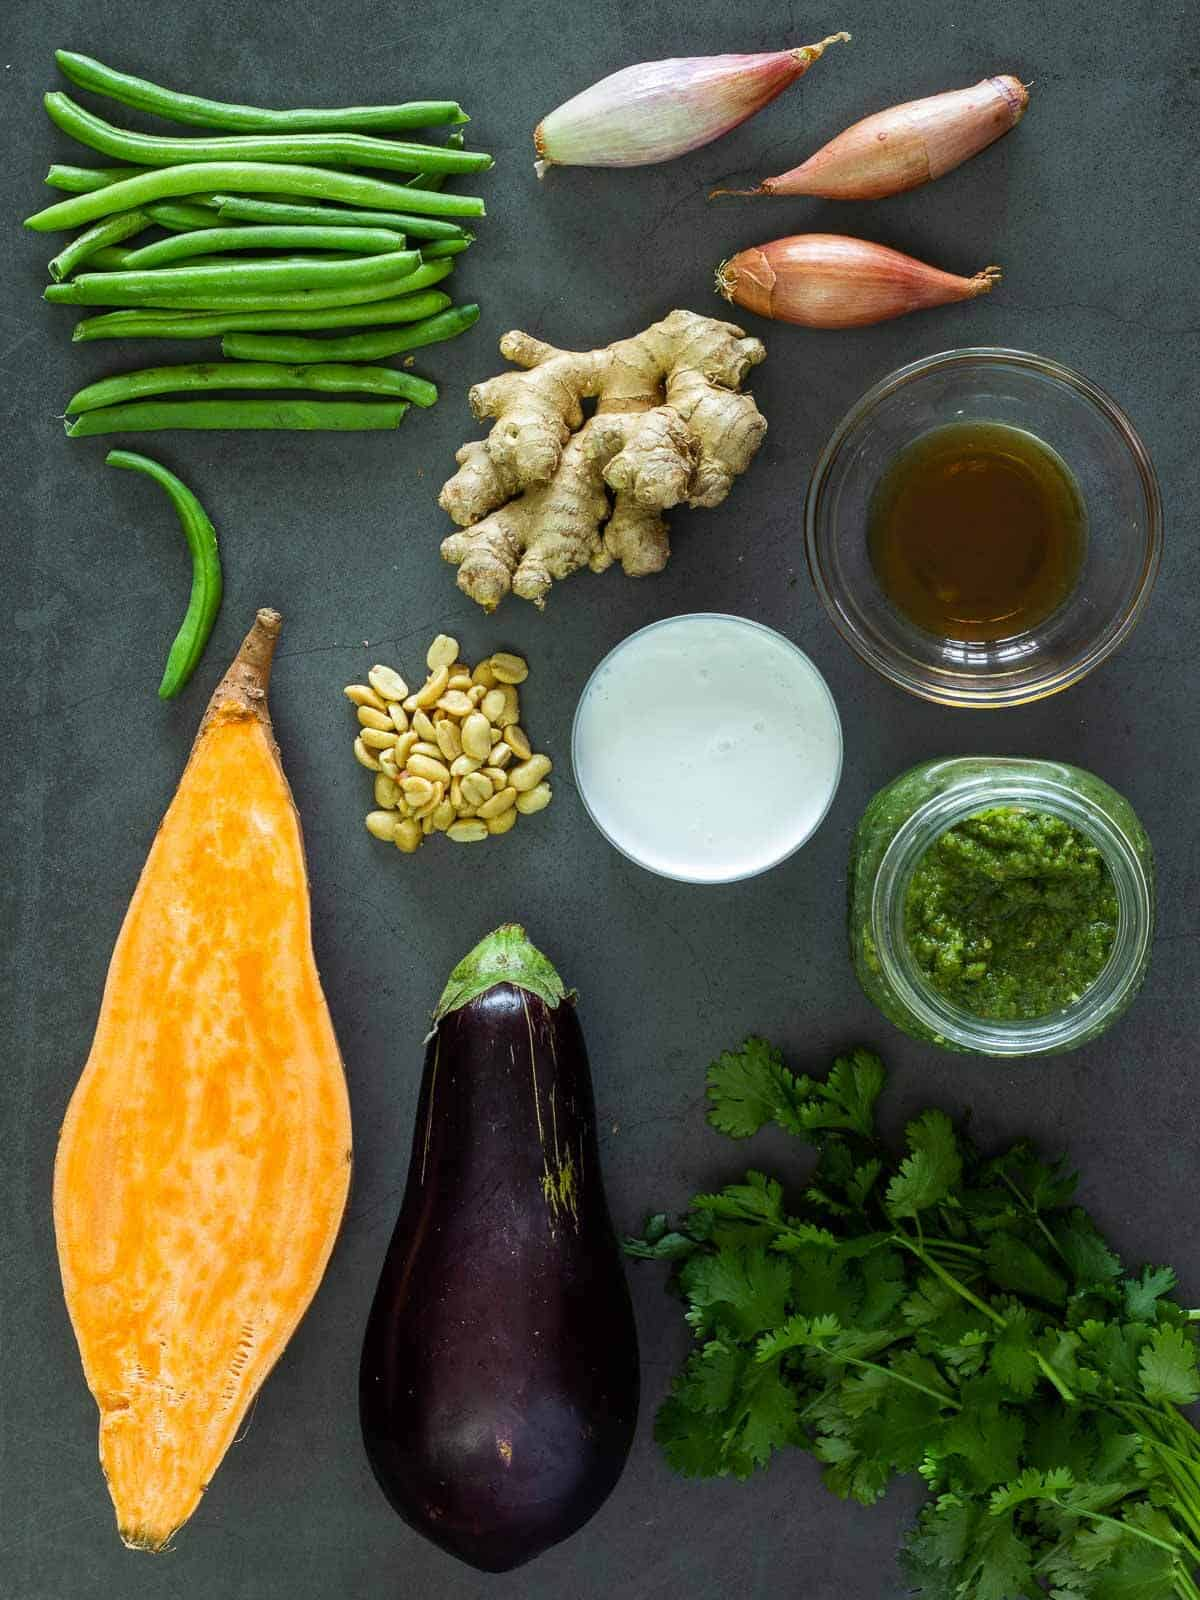 Green Thai Curry Ingredients